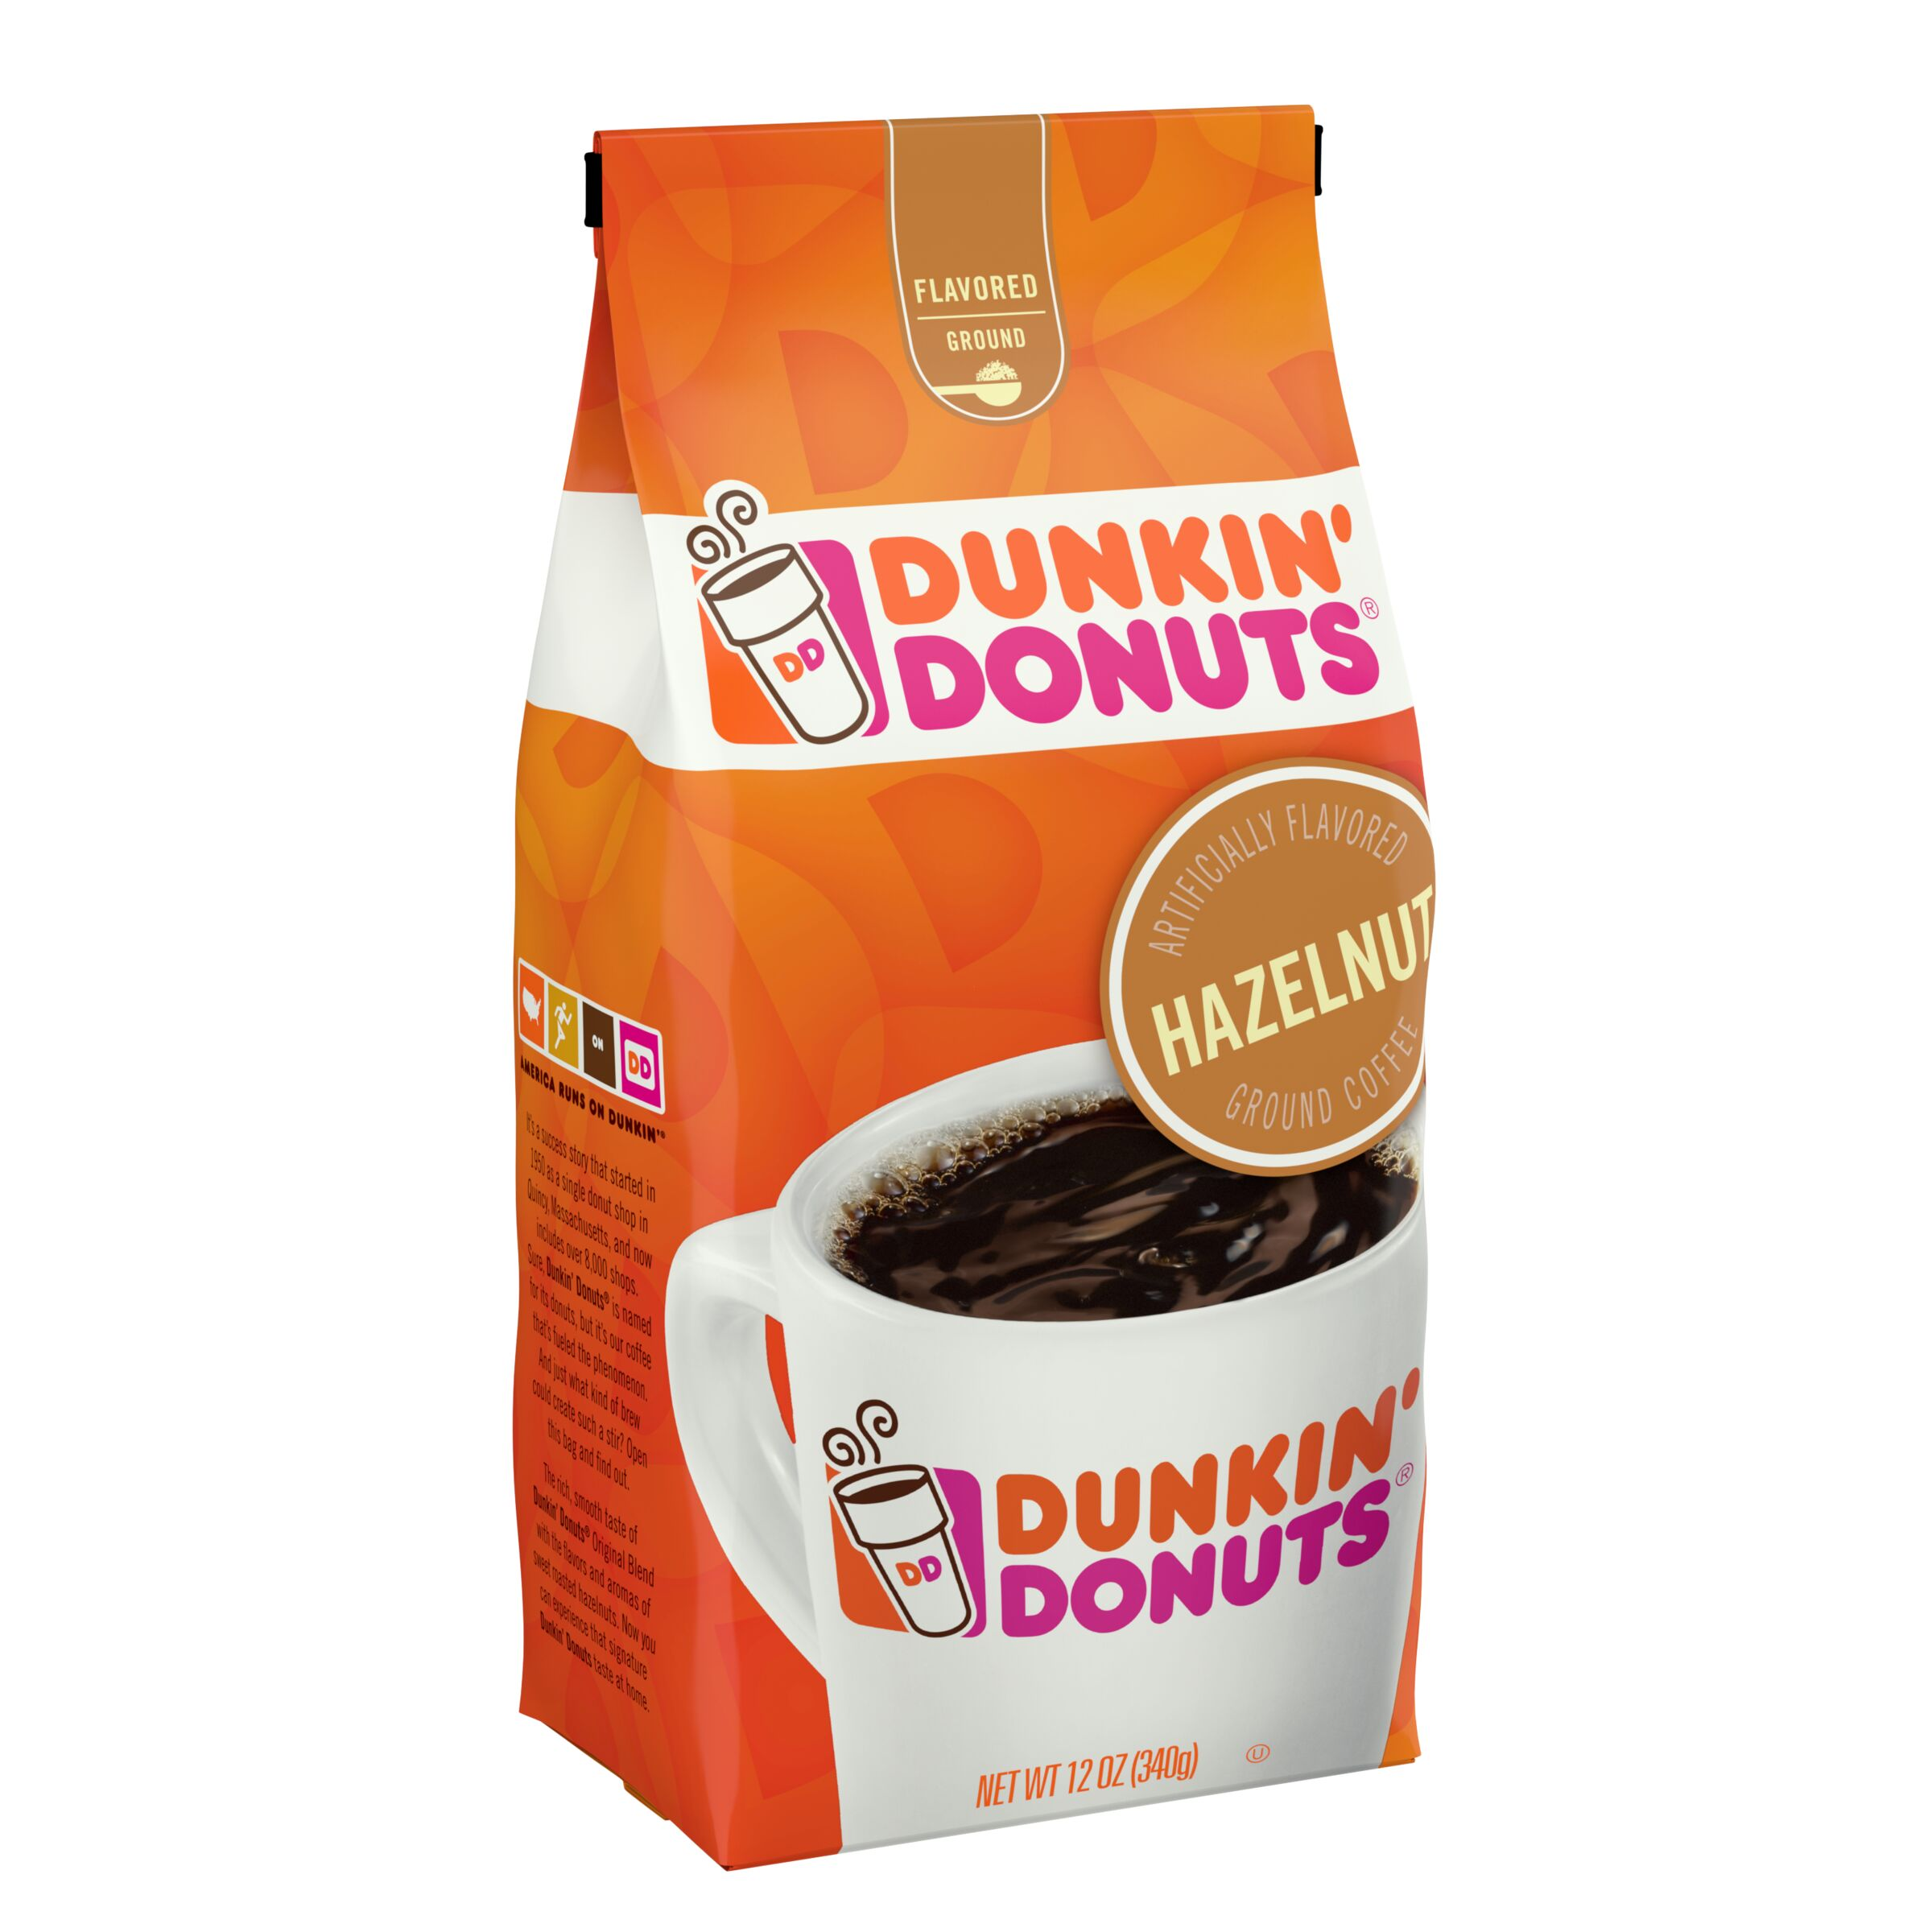 Dunkin' Donuts® Hazelnut Flavored Coffee - SmartLabel™